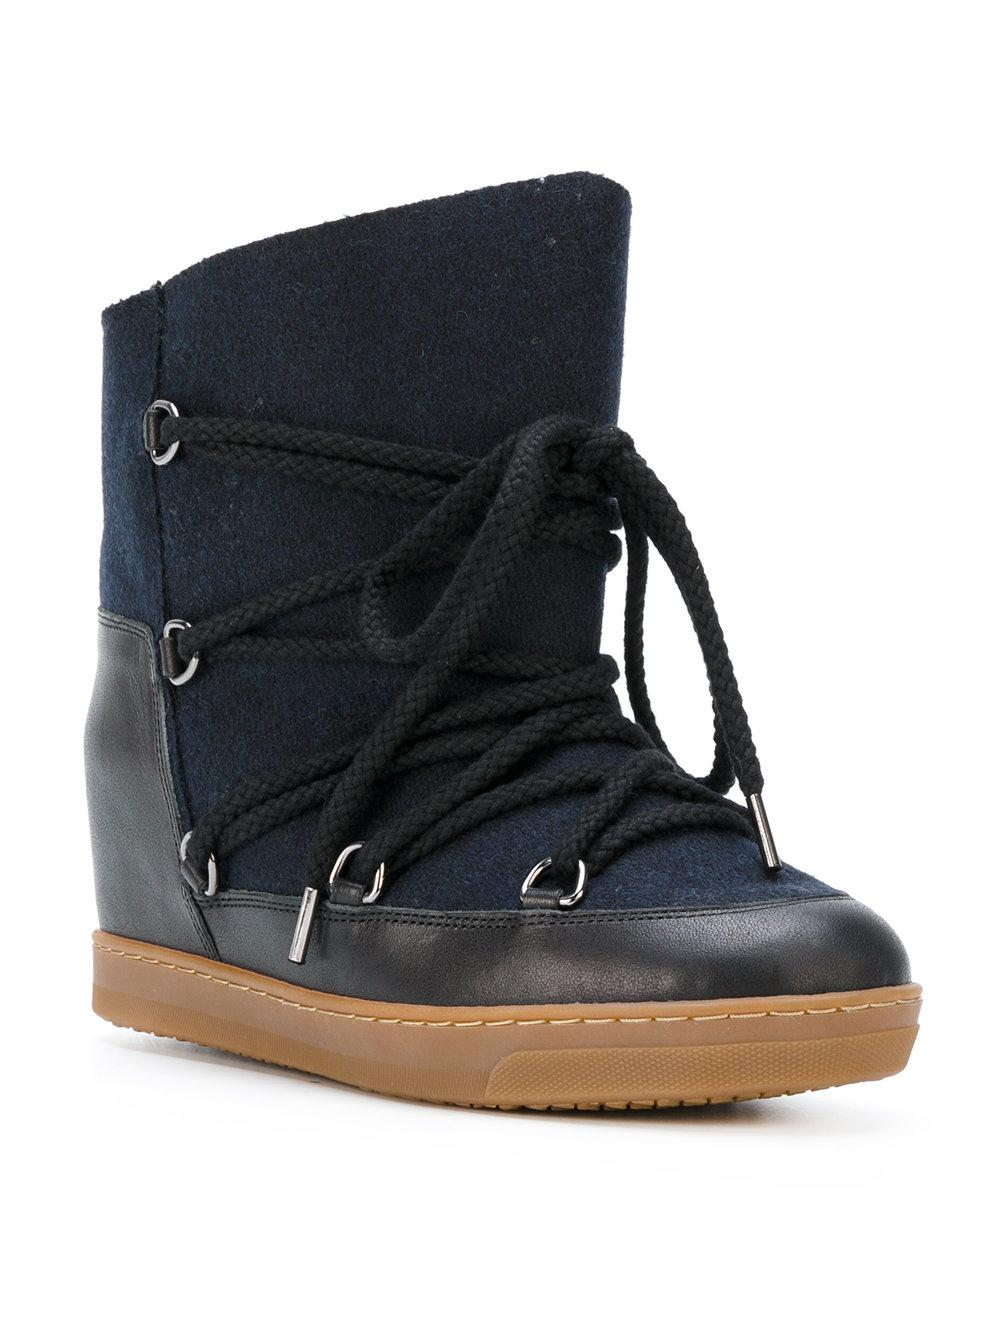 Isabel Marant Leather Étoile 'nowles' Lace-up Boots in Blue